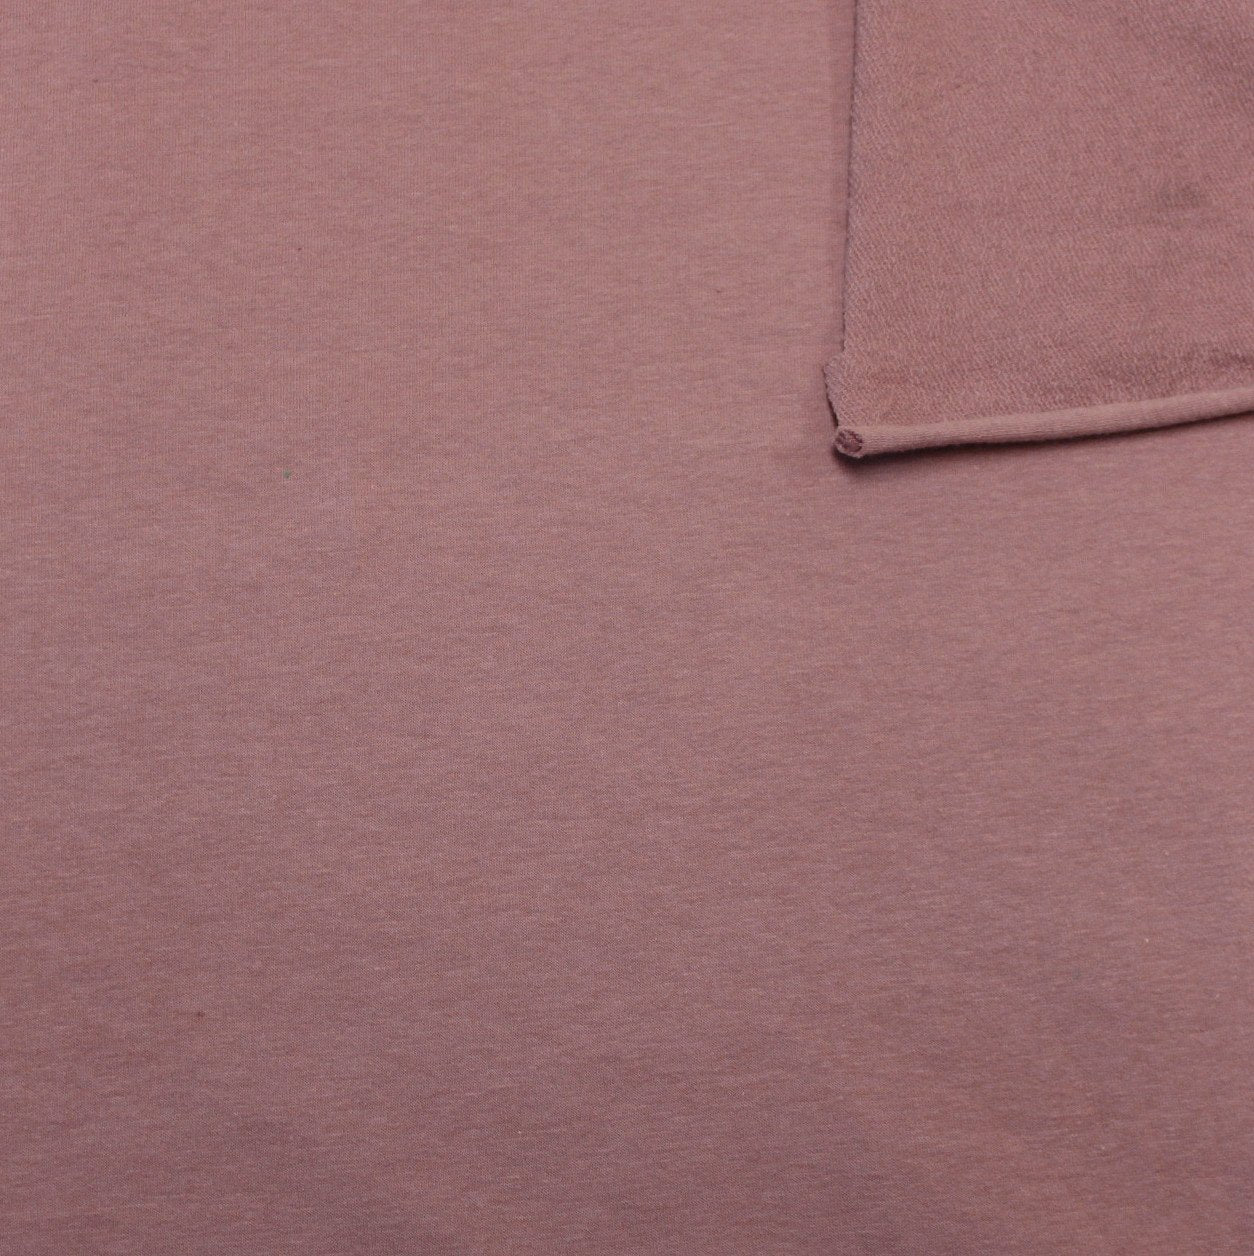 Solid New Mauve 4 Way Stretch French Terry Knit Fabric With Spandex - Raspberry Creek Fabrics Knit Fabric